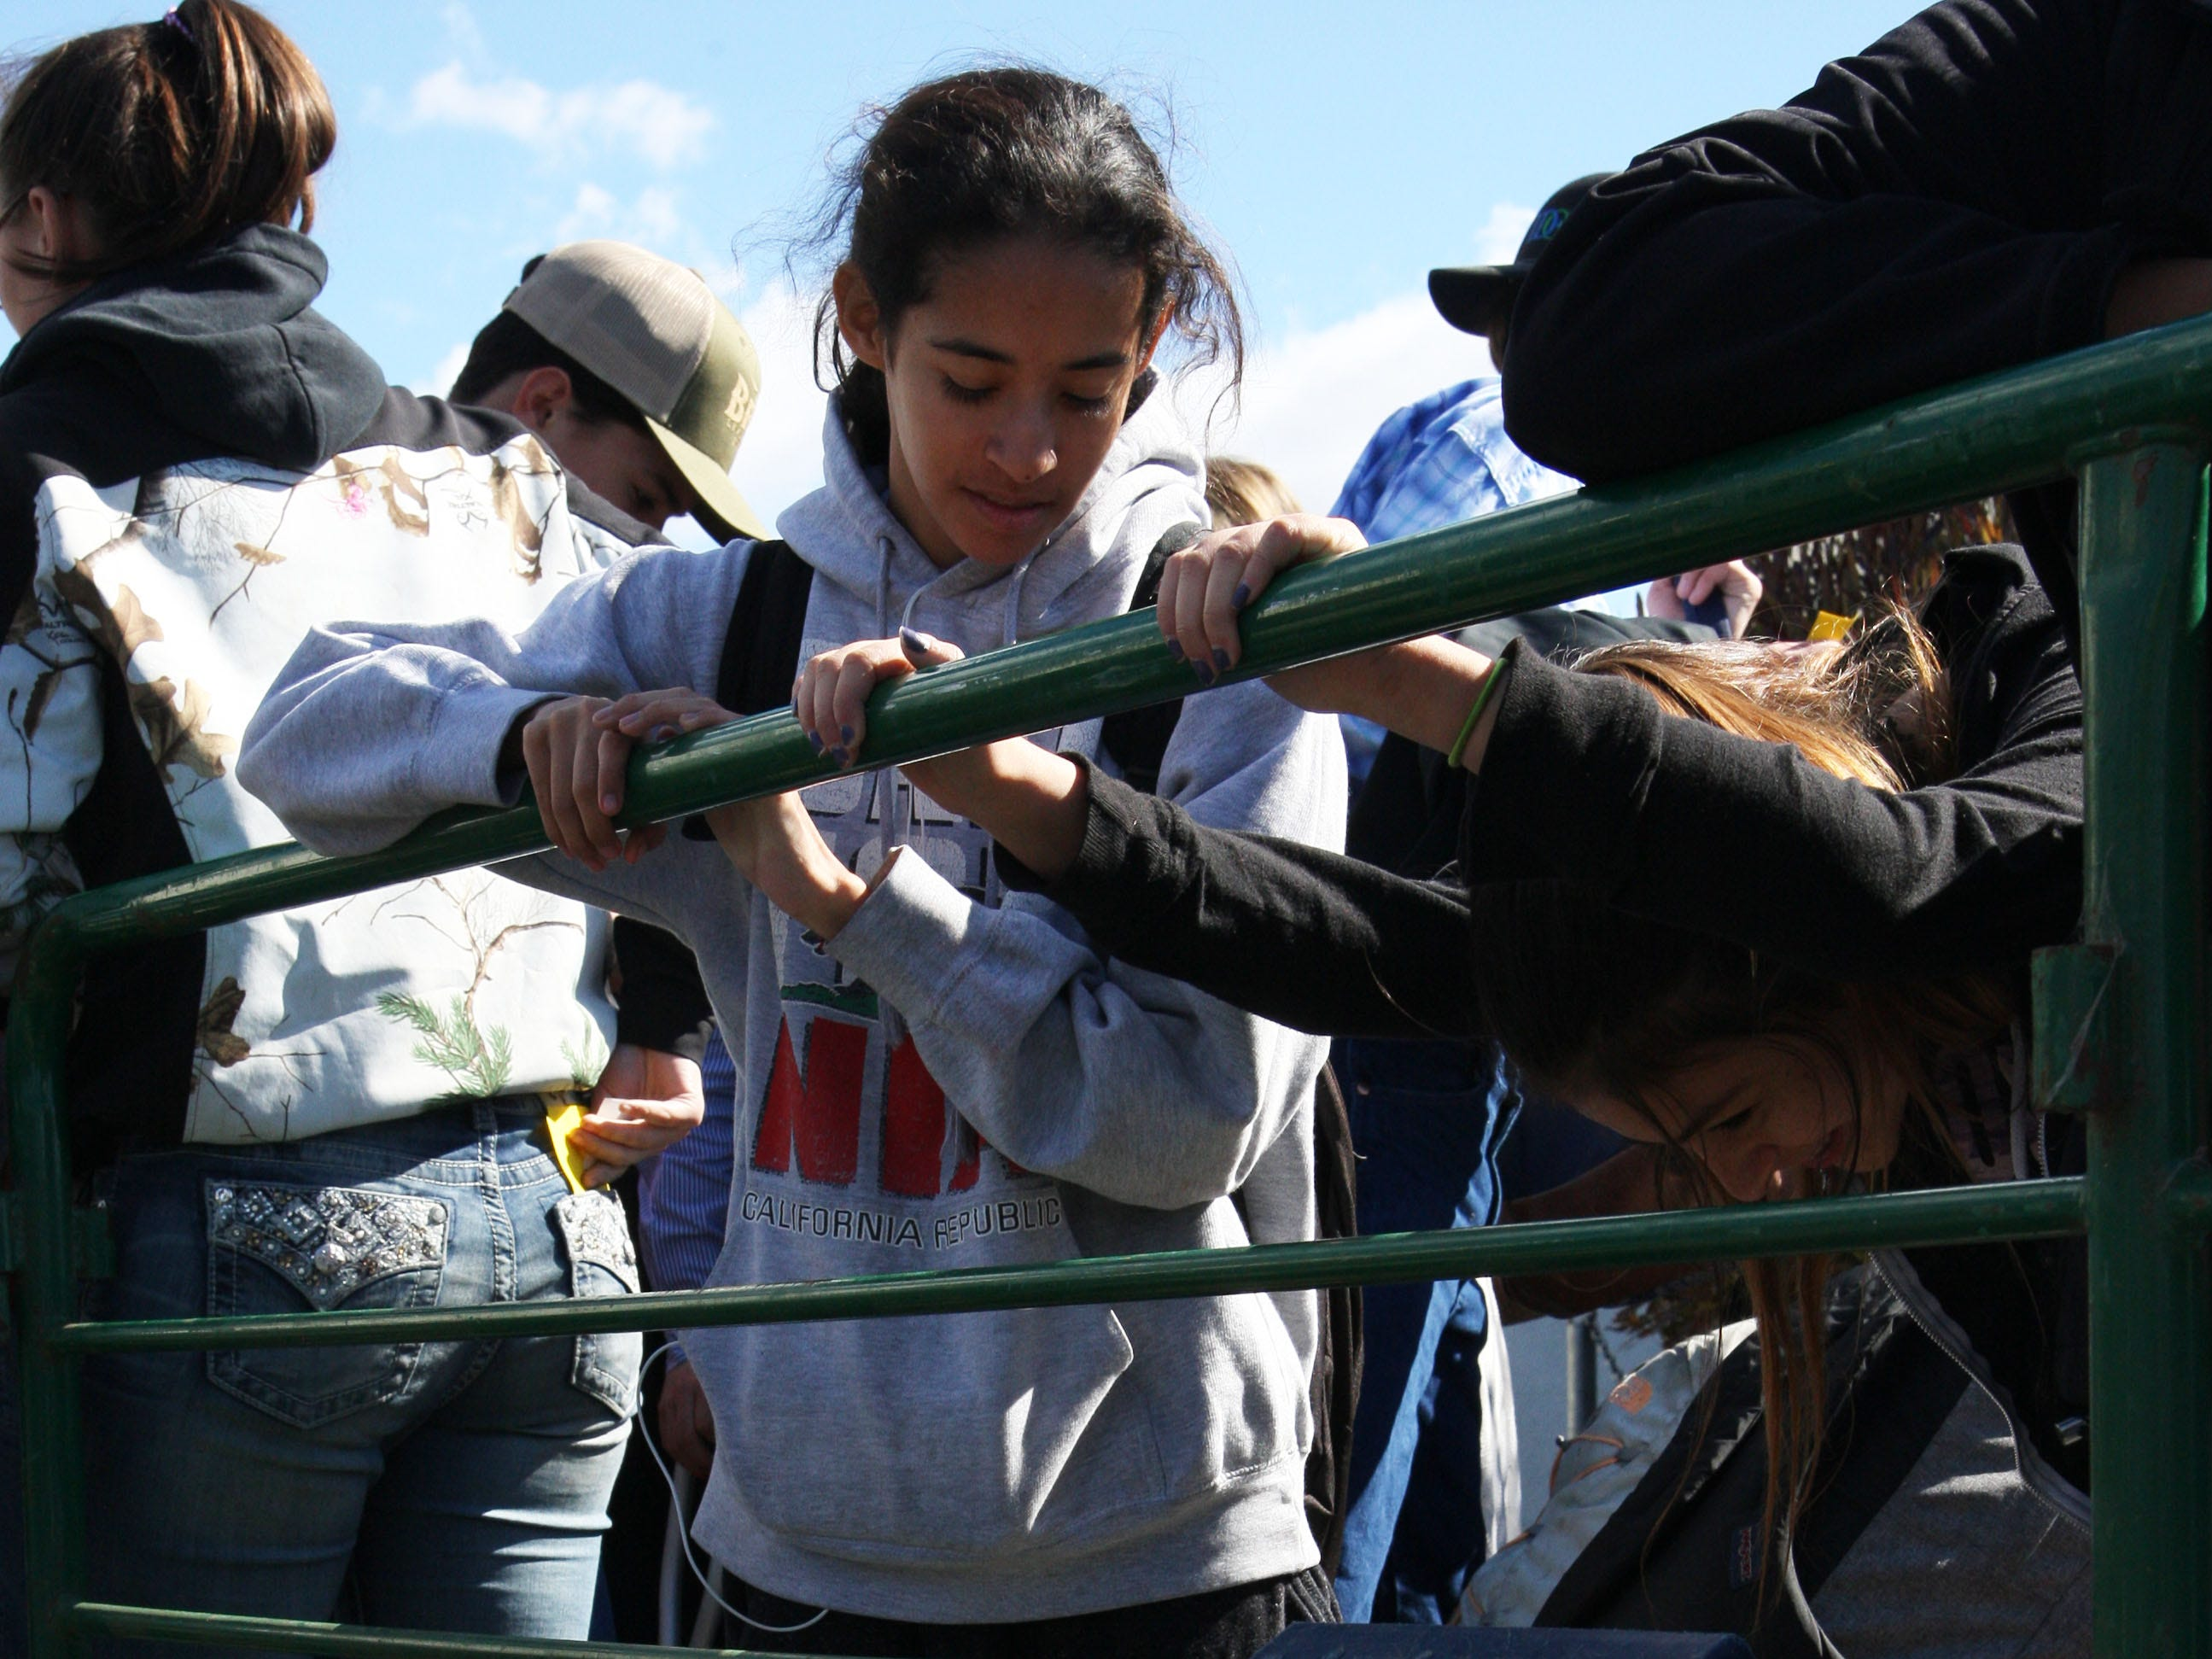 Students look on as one of the pigs drinks water from a bucket.